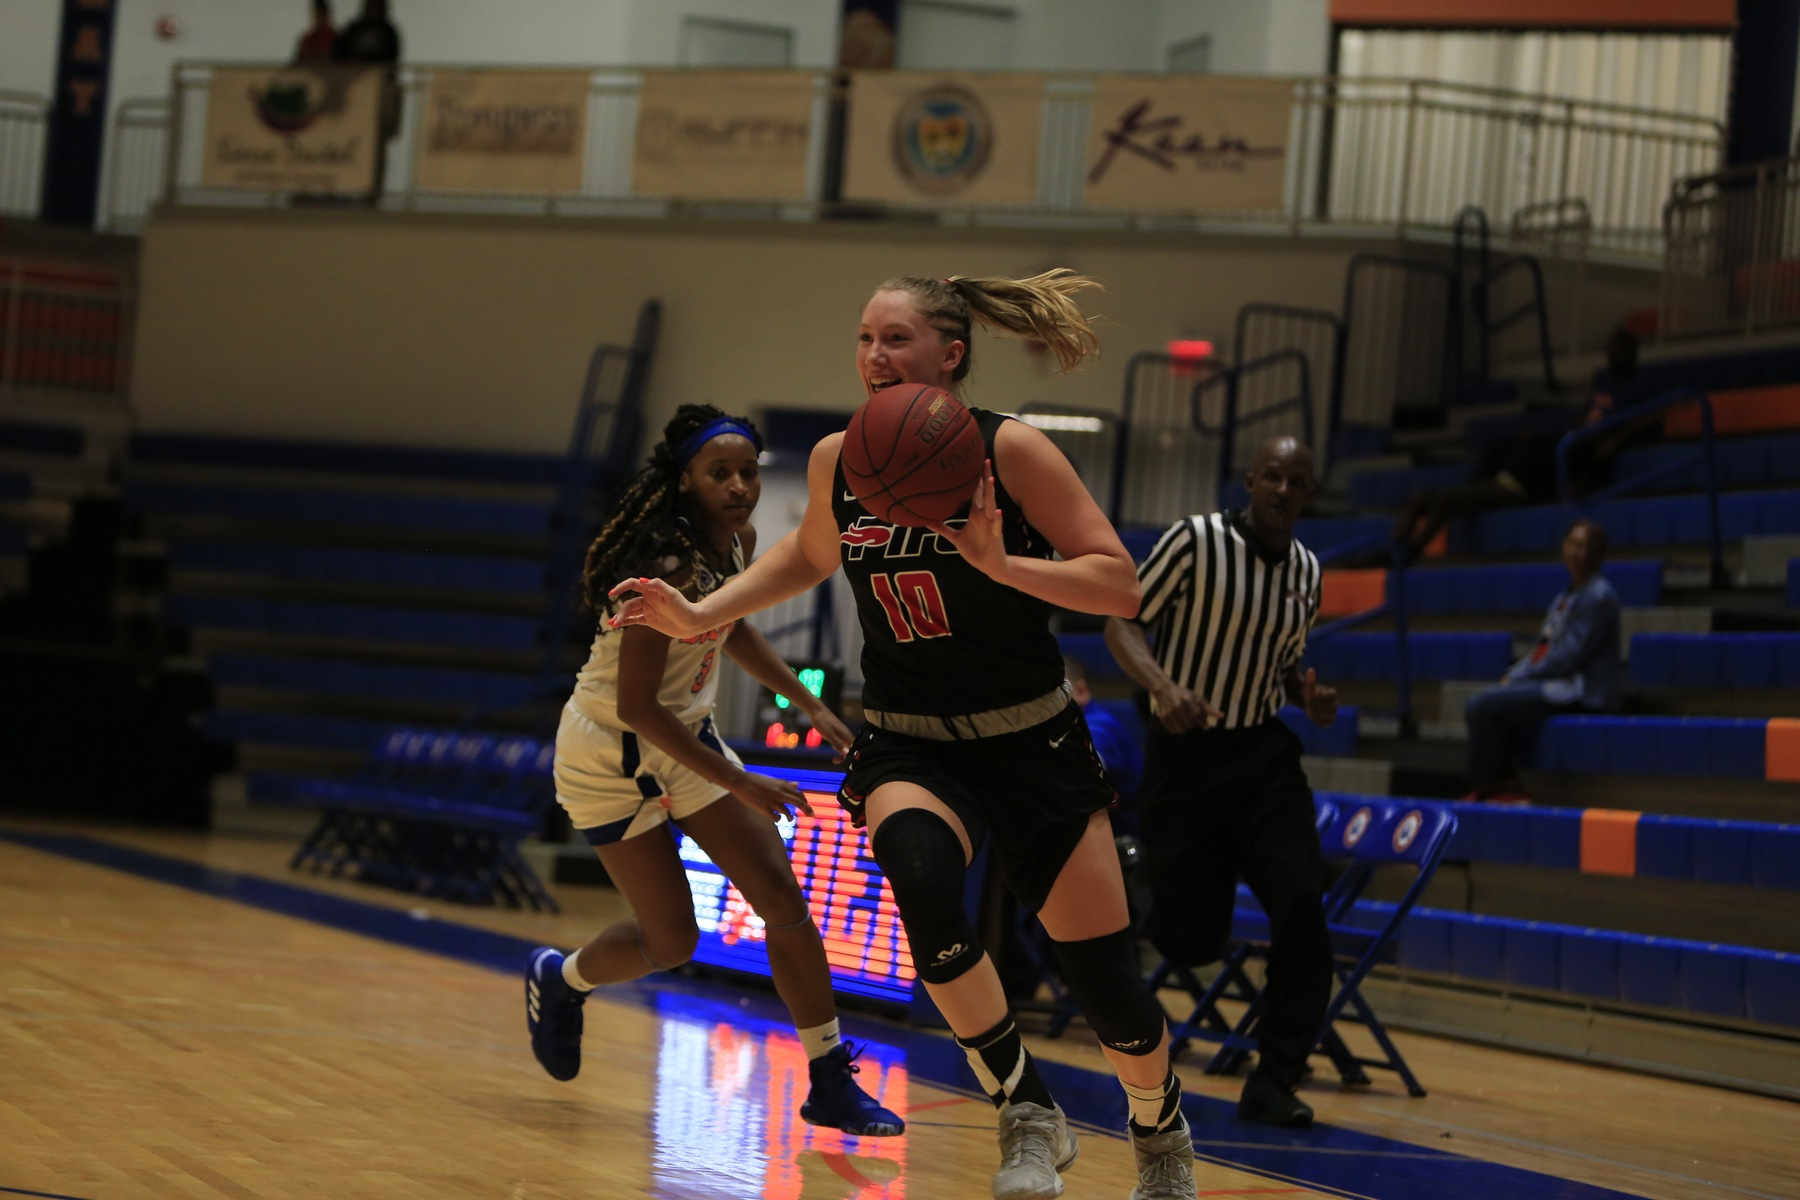 NAIA Division II Women's Basketball National Player of the Week - No. 5